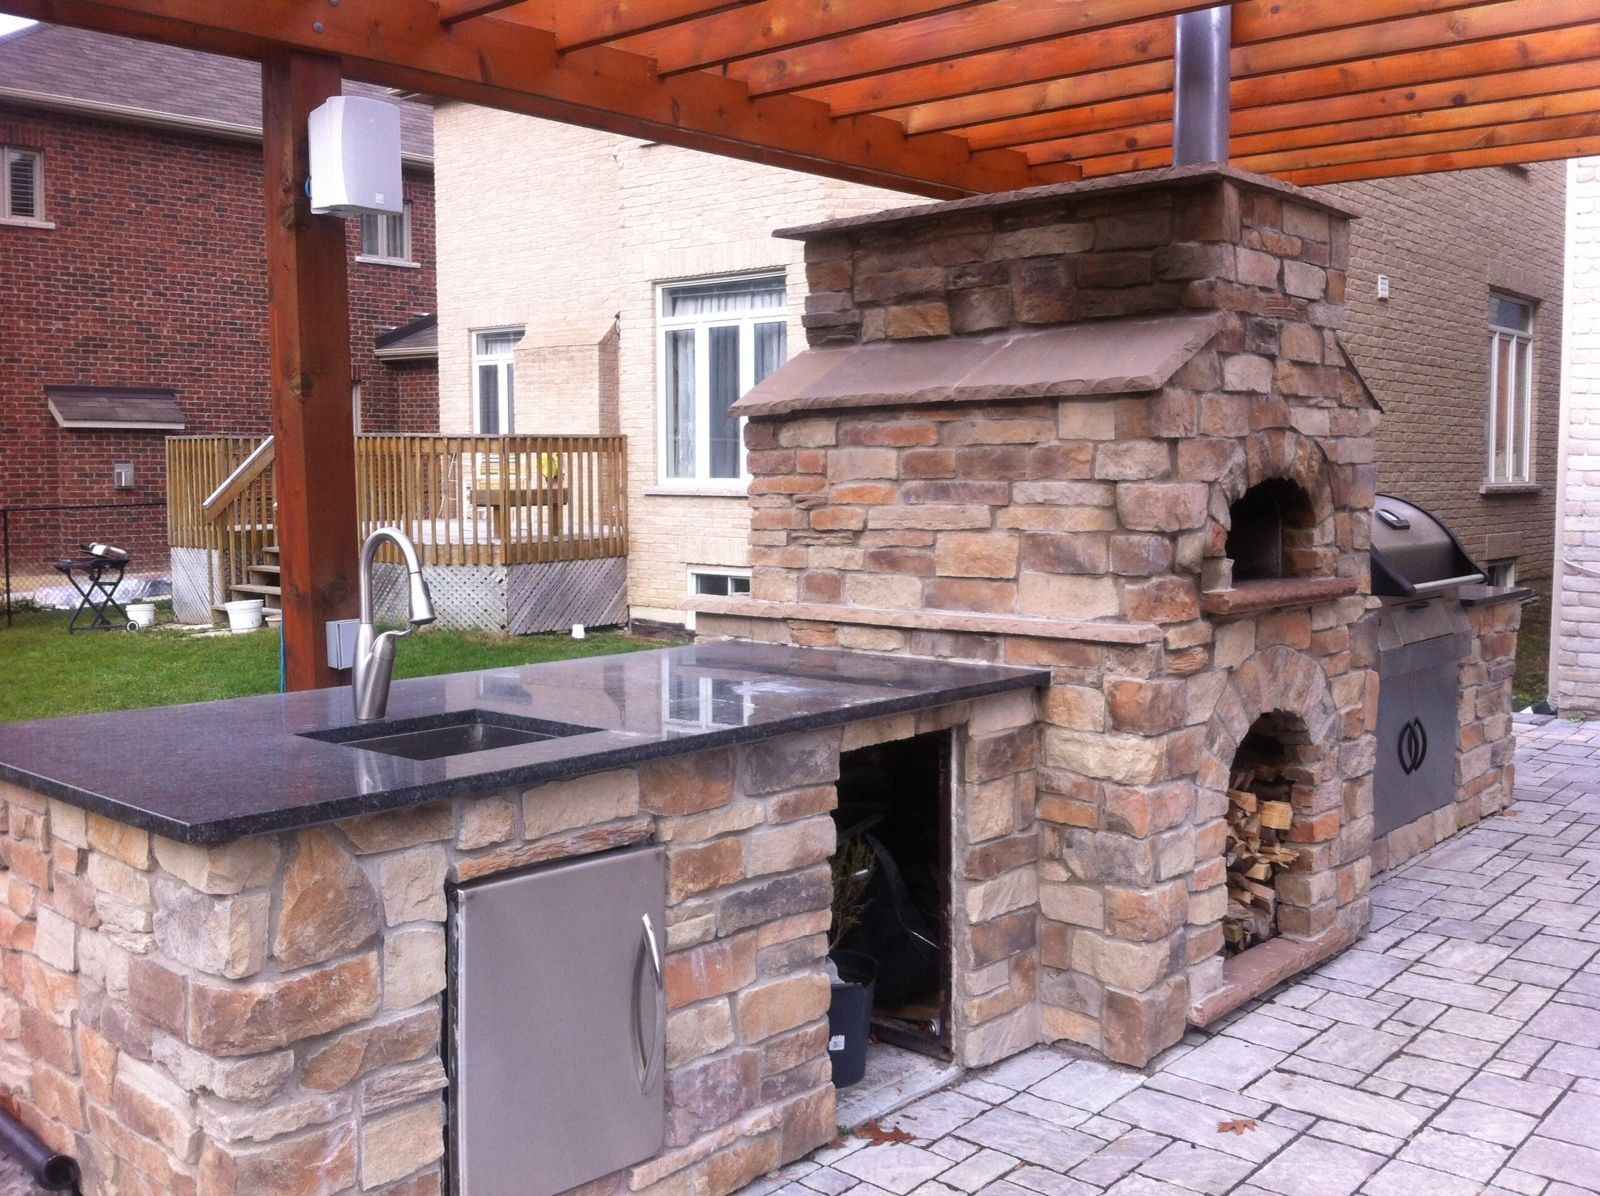 Pin on Grills and Outdoor Kitchens